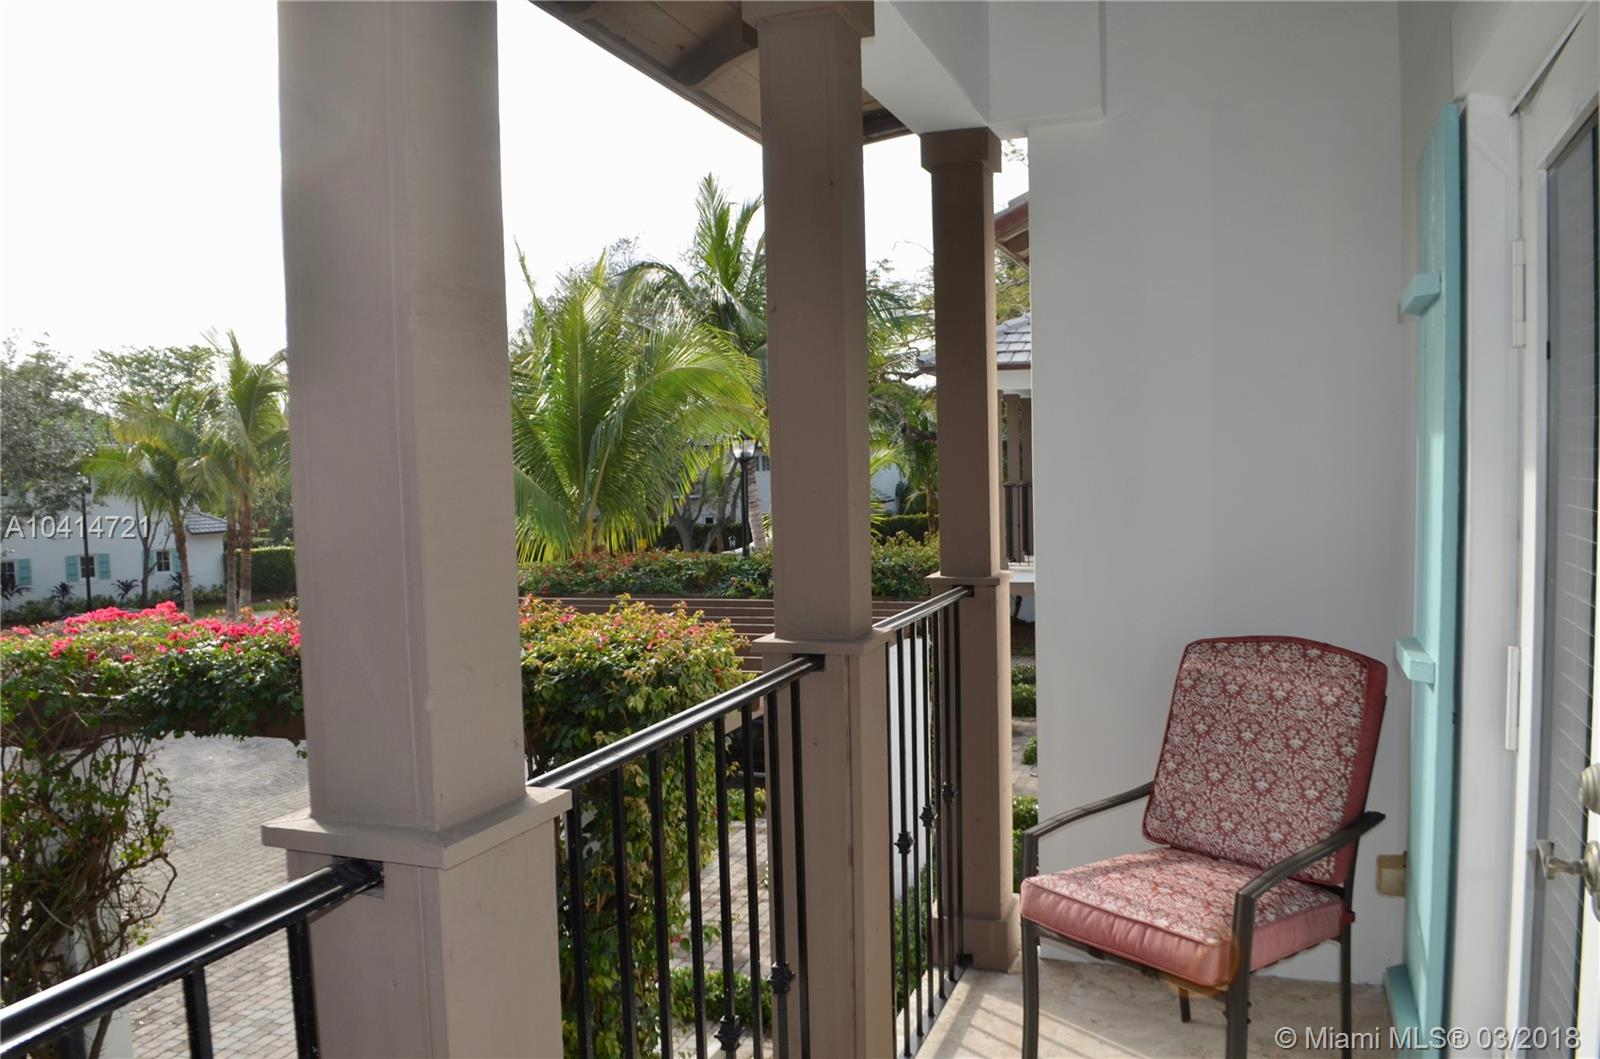 11034 Sw 79th Path, Miami FL, 33156